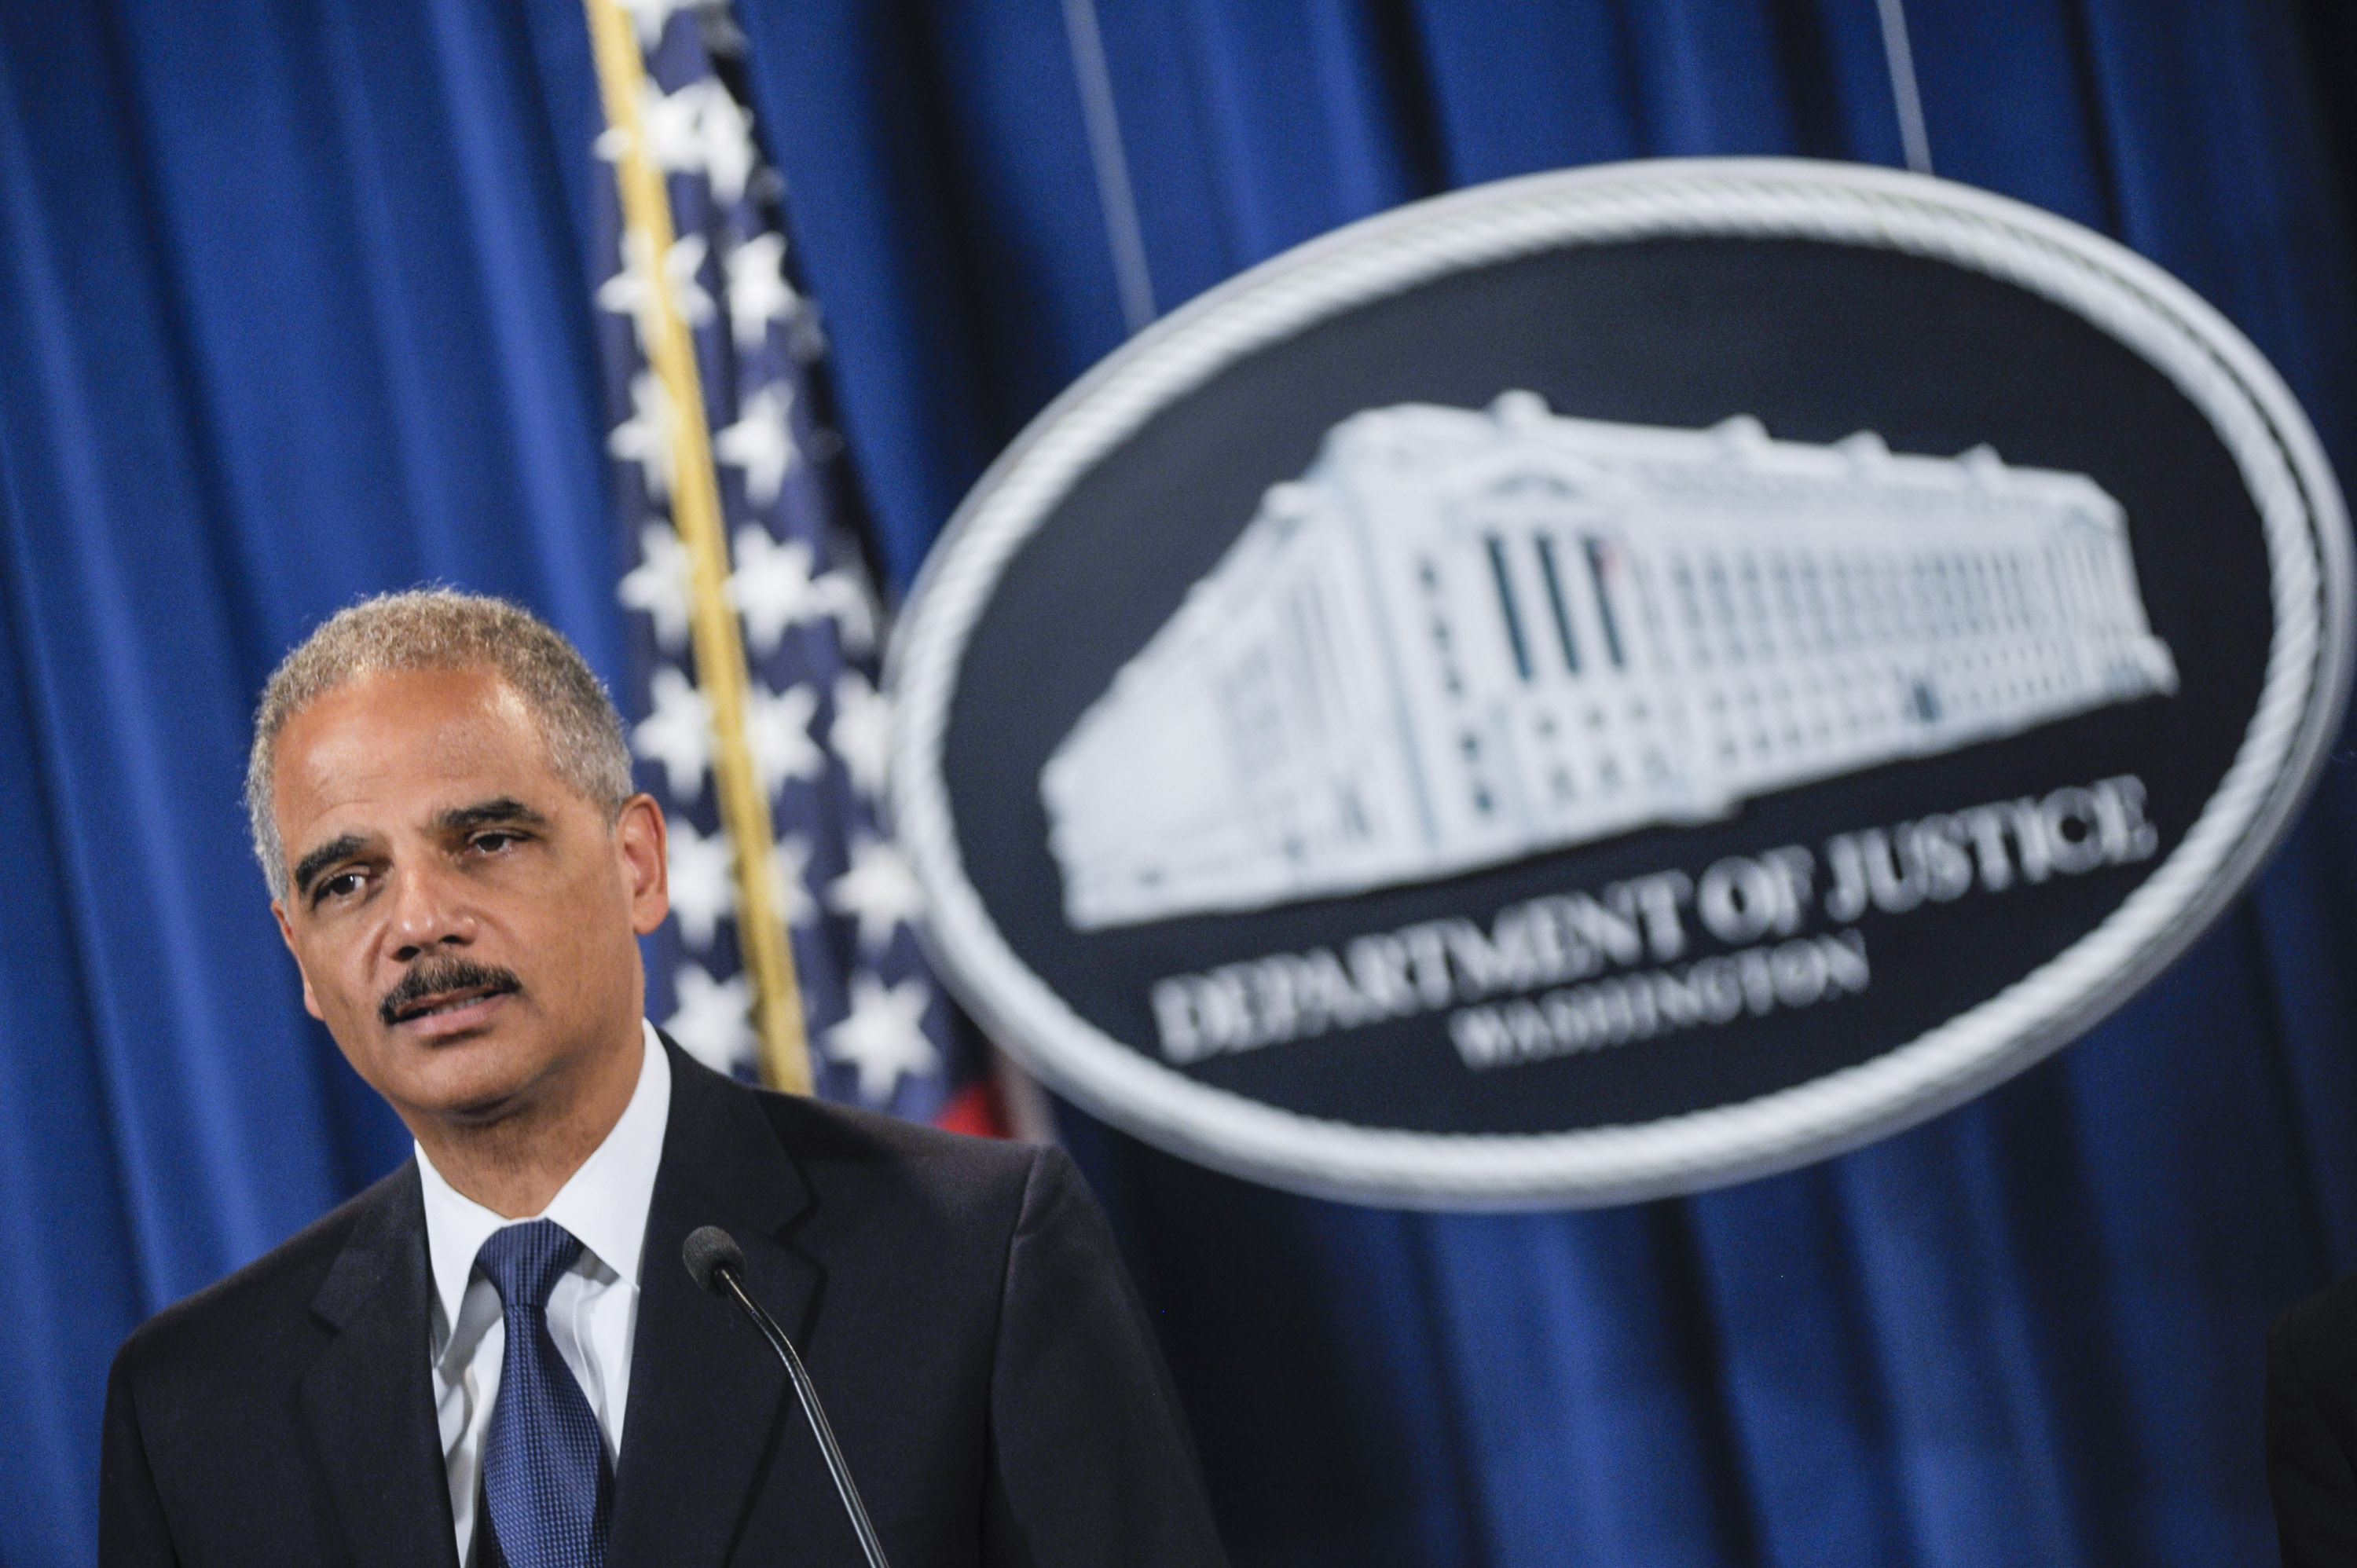 U.S. Attorney General Eric Holder speaks during a press conference announcing Department of Justice plans to sue North Carolina over Voter ID regulations at the Department of Justice on September 30, 2013 in Washington, D.C.